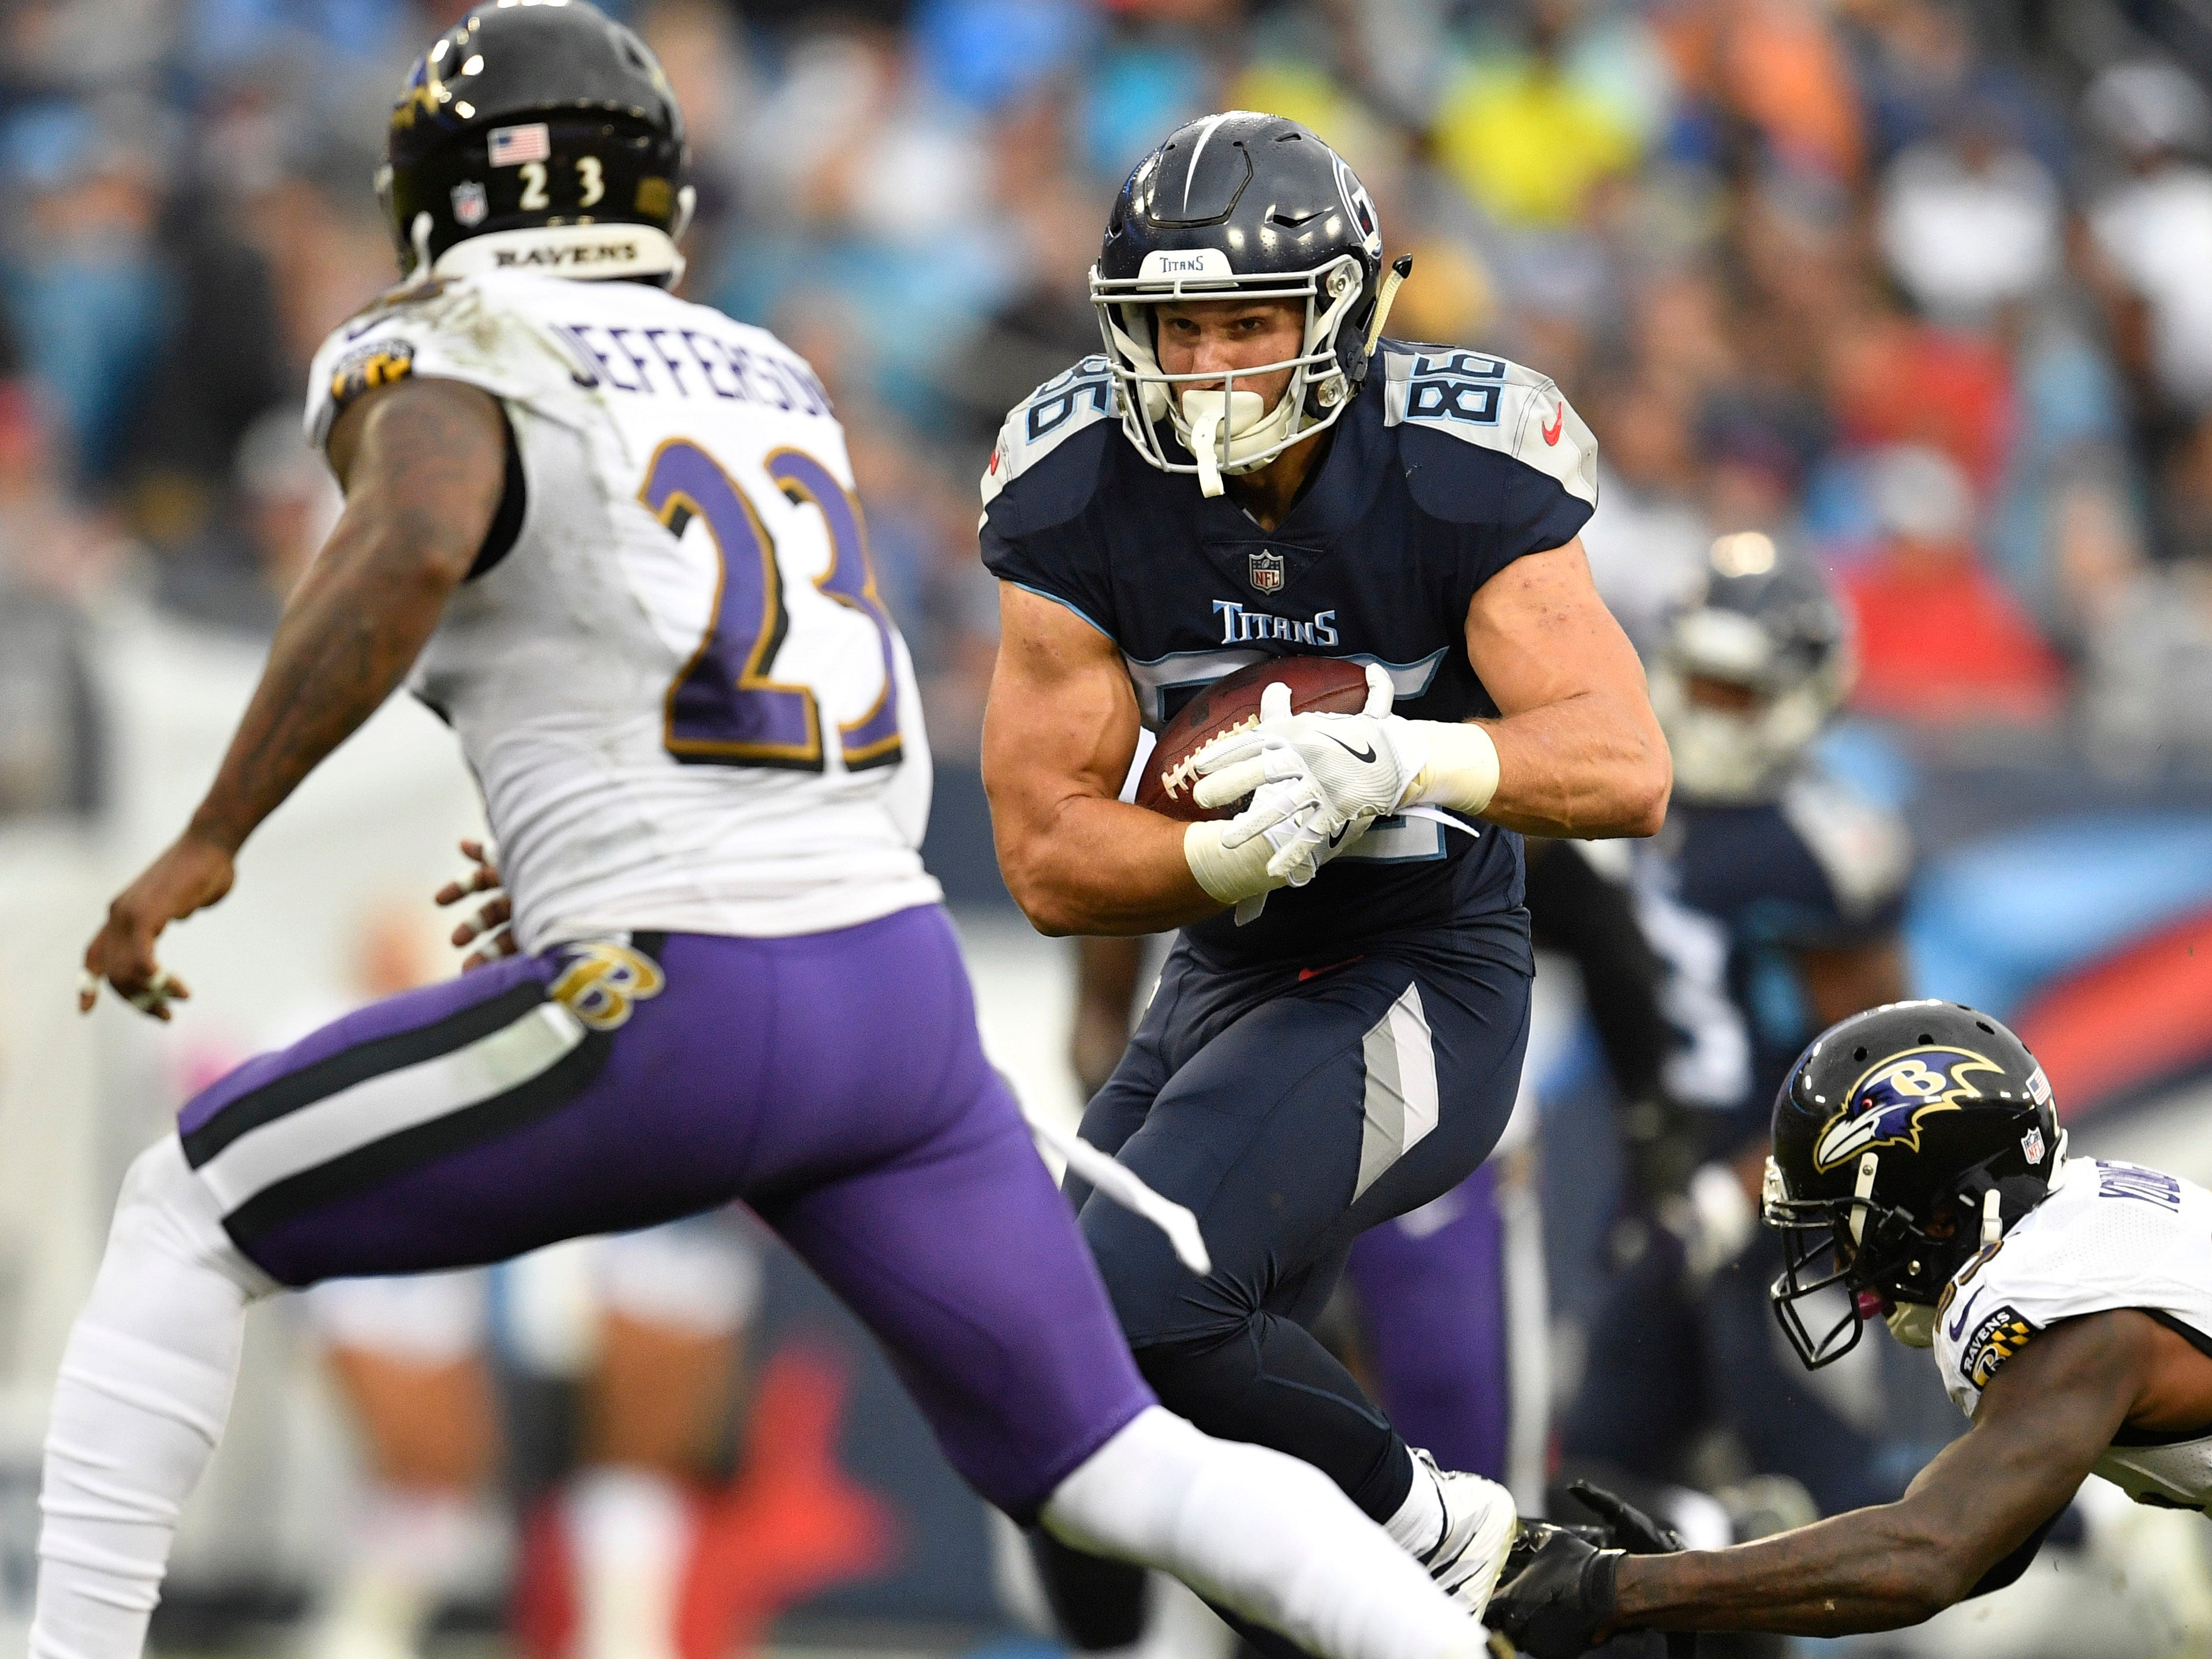 Titans tight end Anthony Firkser (86) tries to gain yards in the second quarter as Ravens strong safety Tony Jefferson (23) closes in at Nissan Stadium Sunday, Oct. 14, 2018, in Nashville, Tenn.